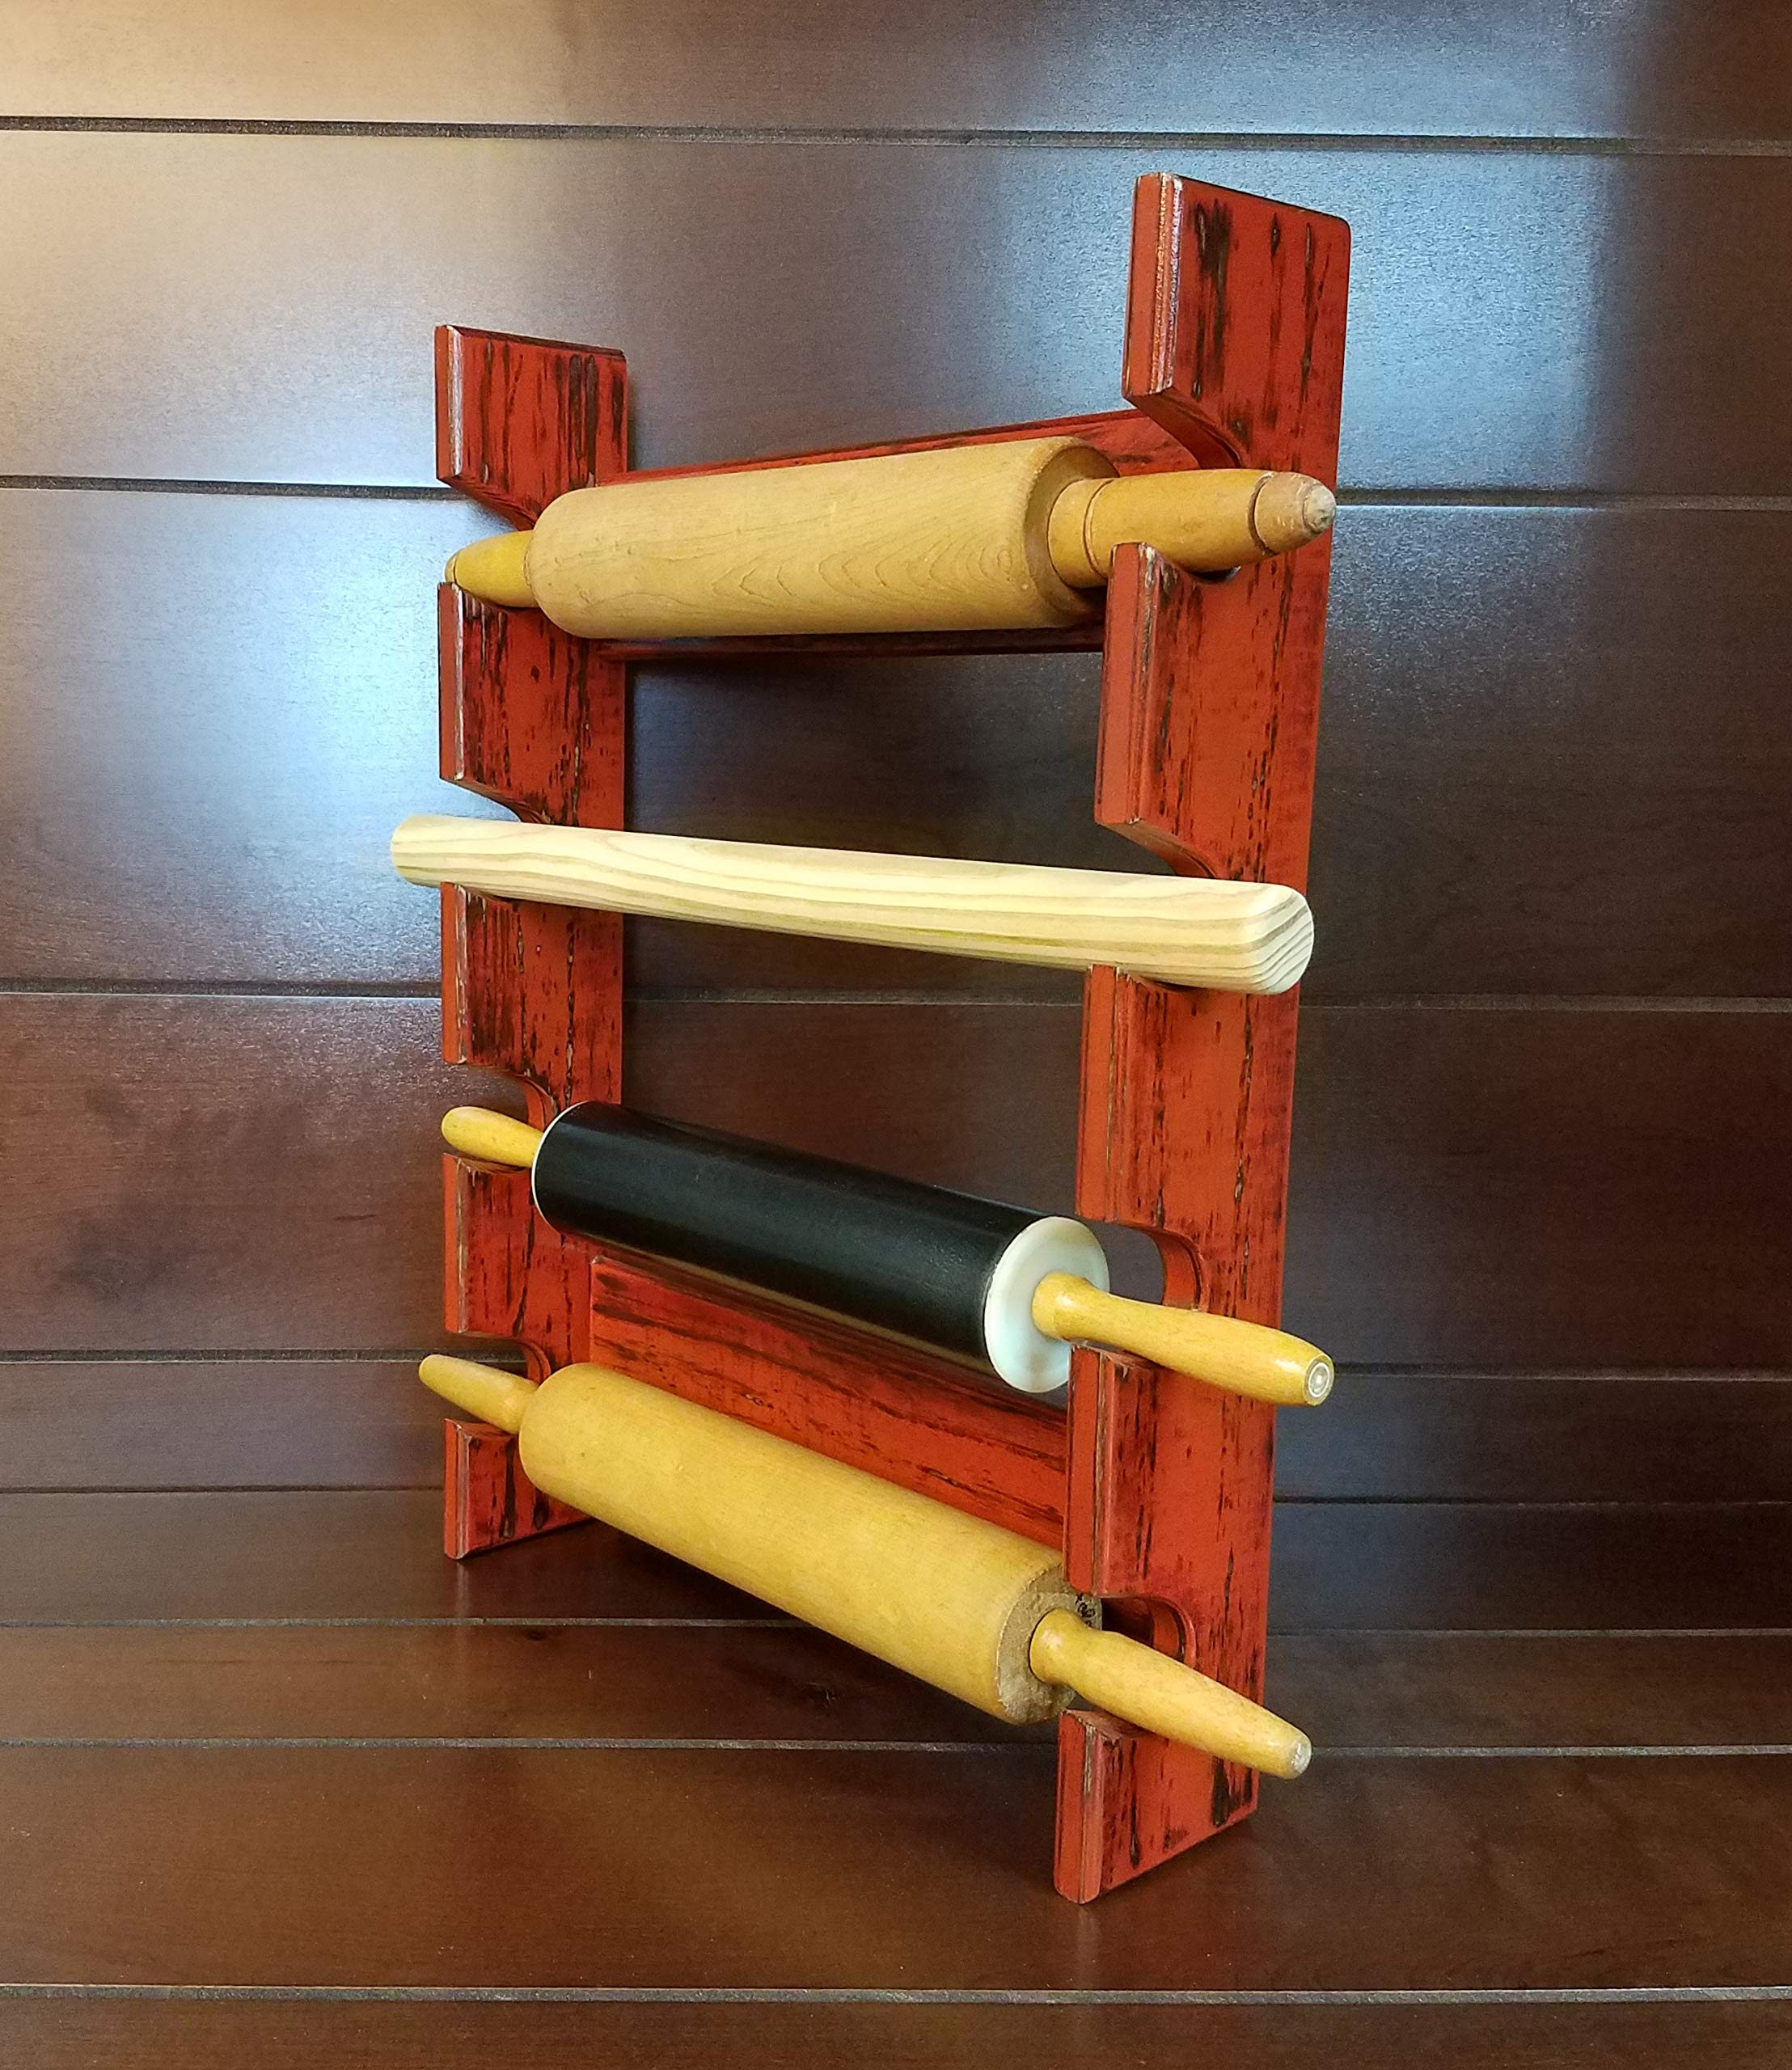 Red Rolling Pin Rack with Four Slots - Multiple Rolling Pin Rack - Rolling Pin Holder - Rolling Pin Storage - Rolling Pin Rack for 4 Pins